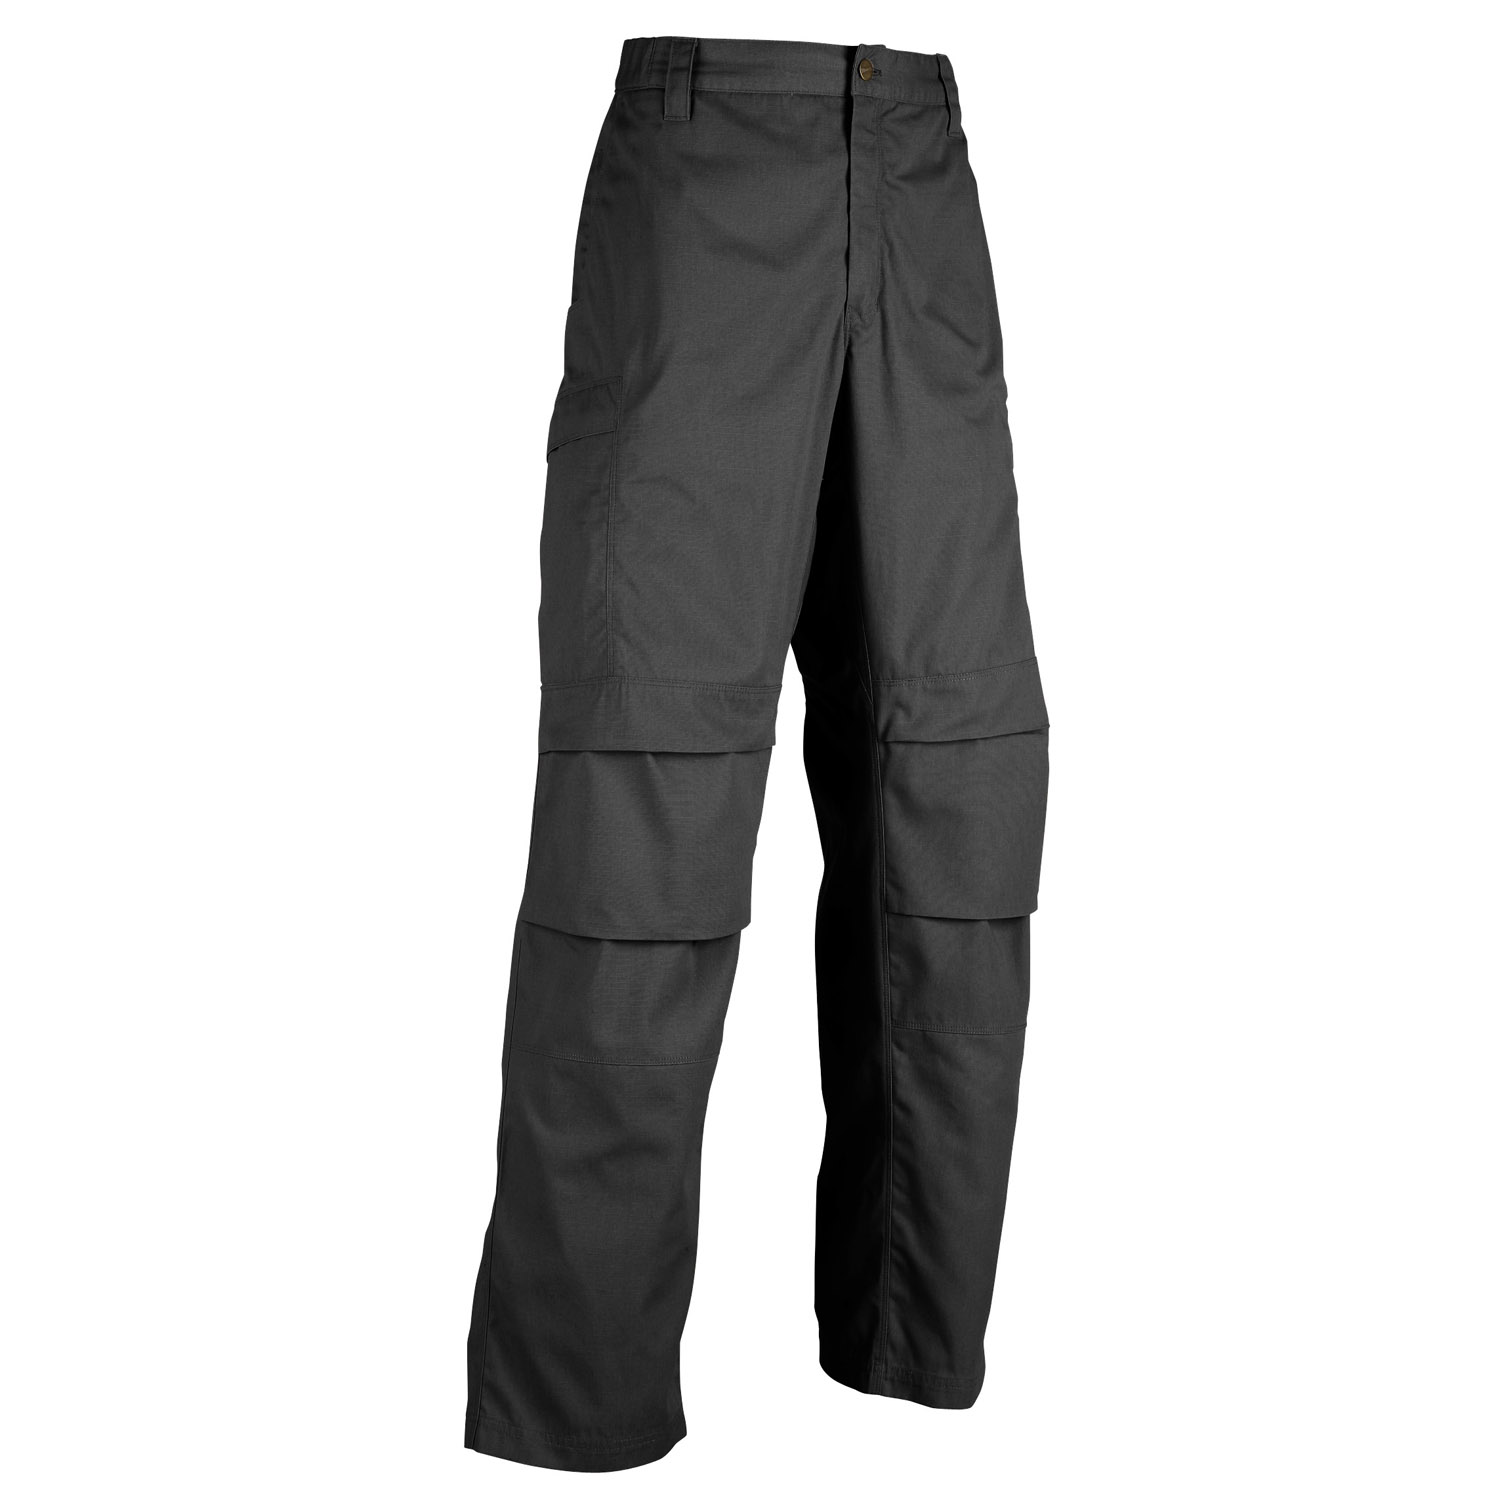 Vertx Phantom LT Pants